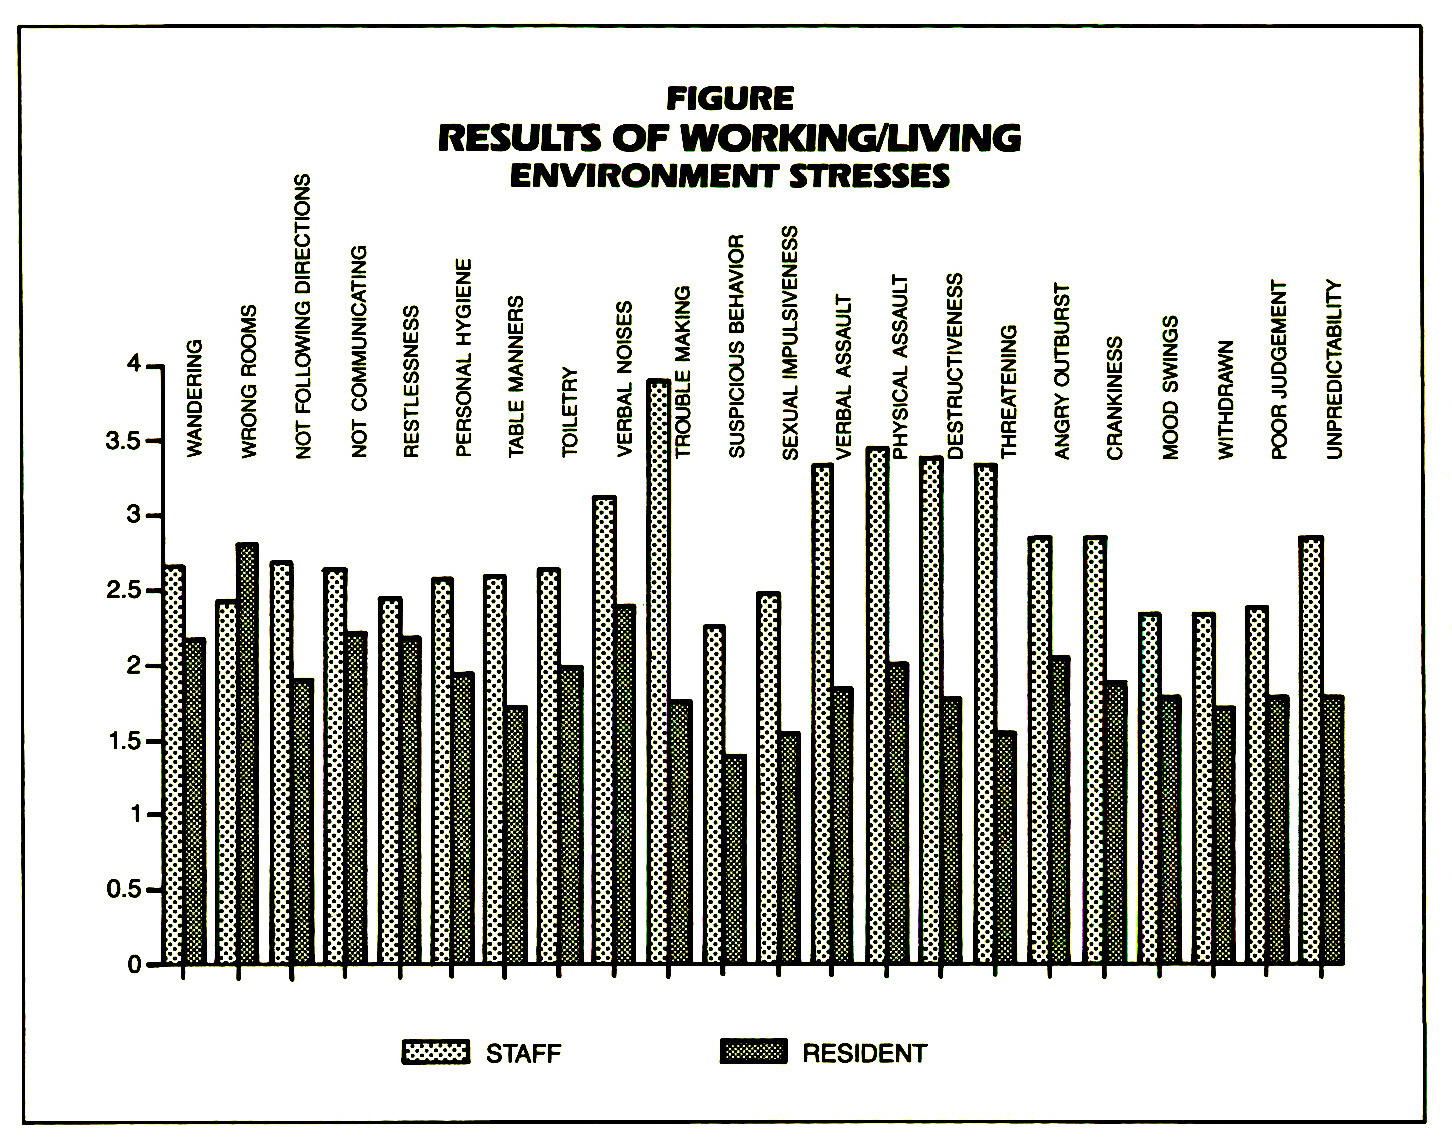 FIGURERESULTS OF WORKING/LIVING ENVIRONMENT STRESSES